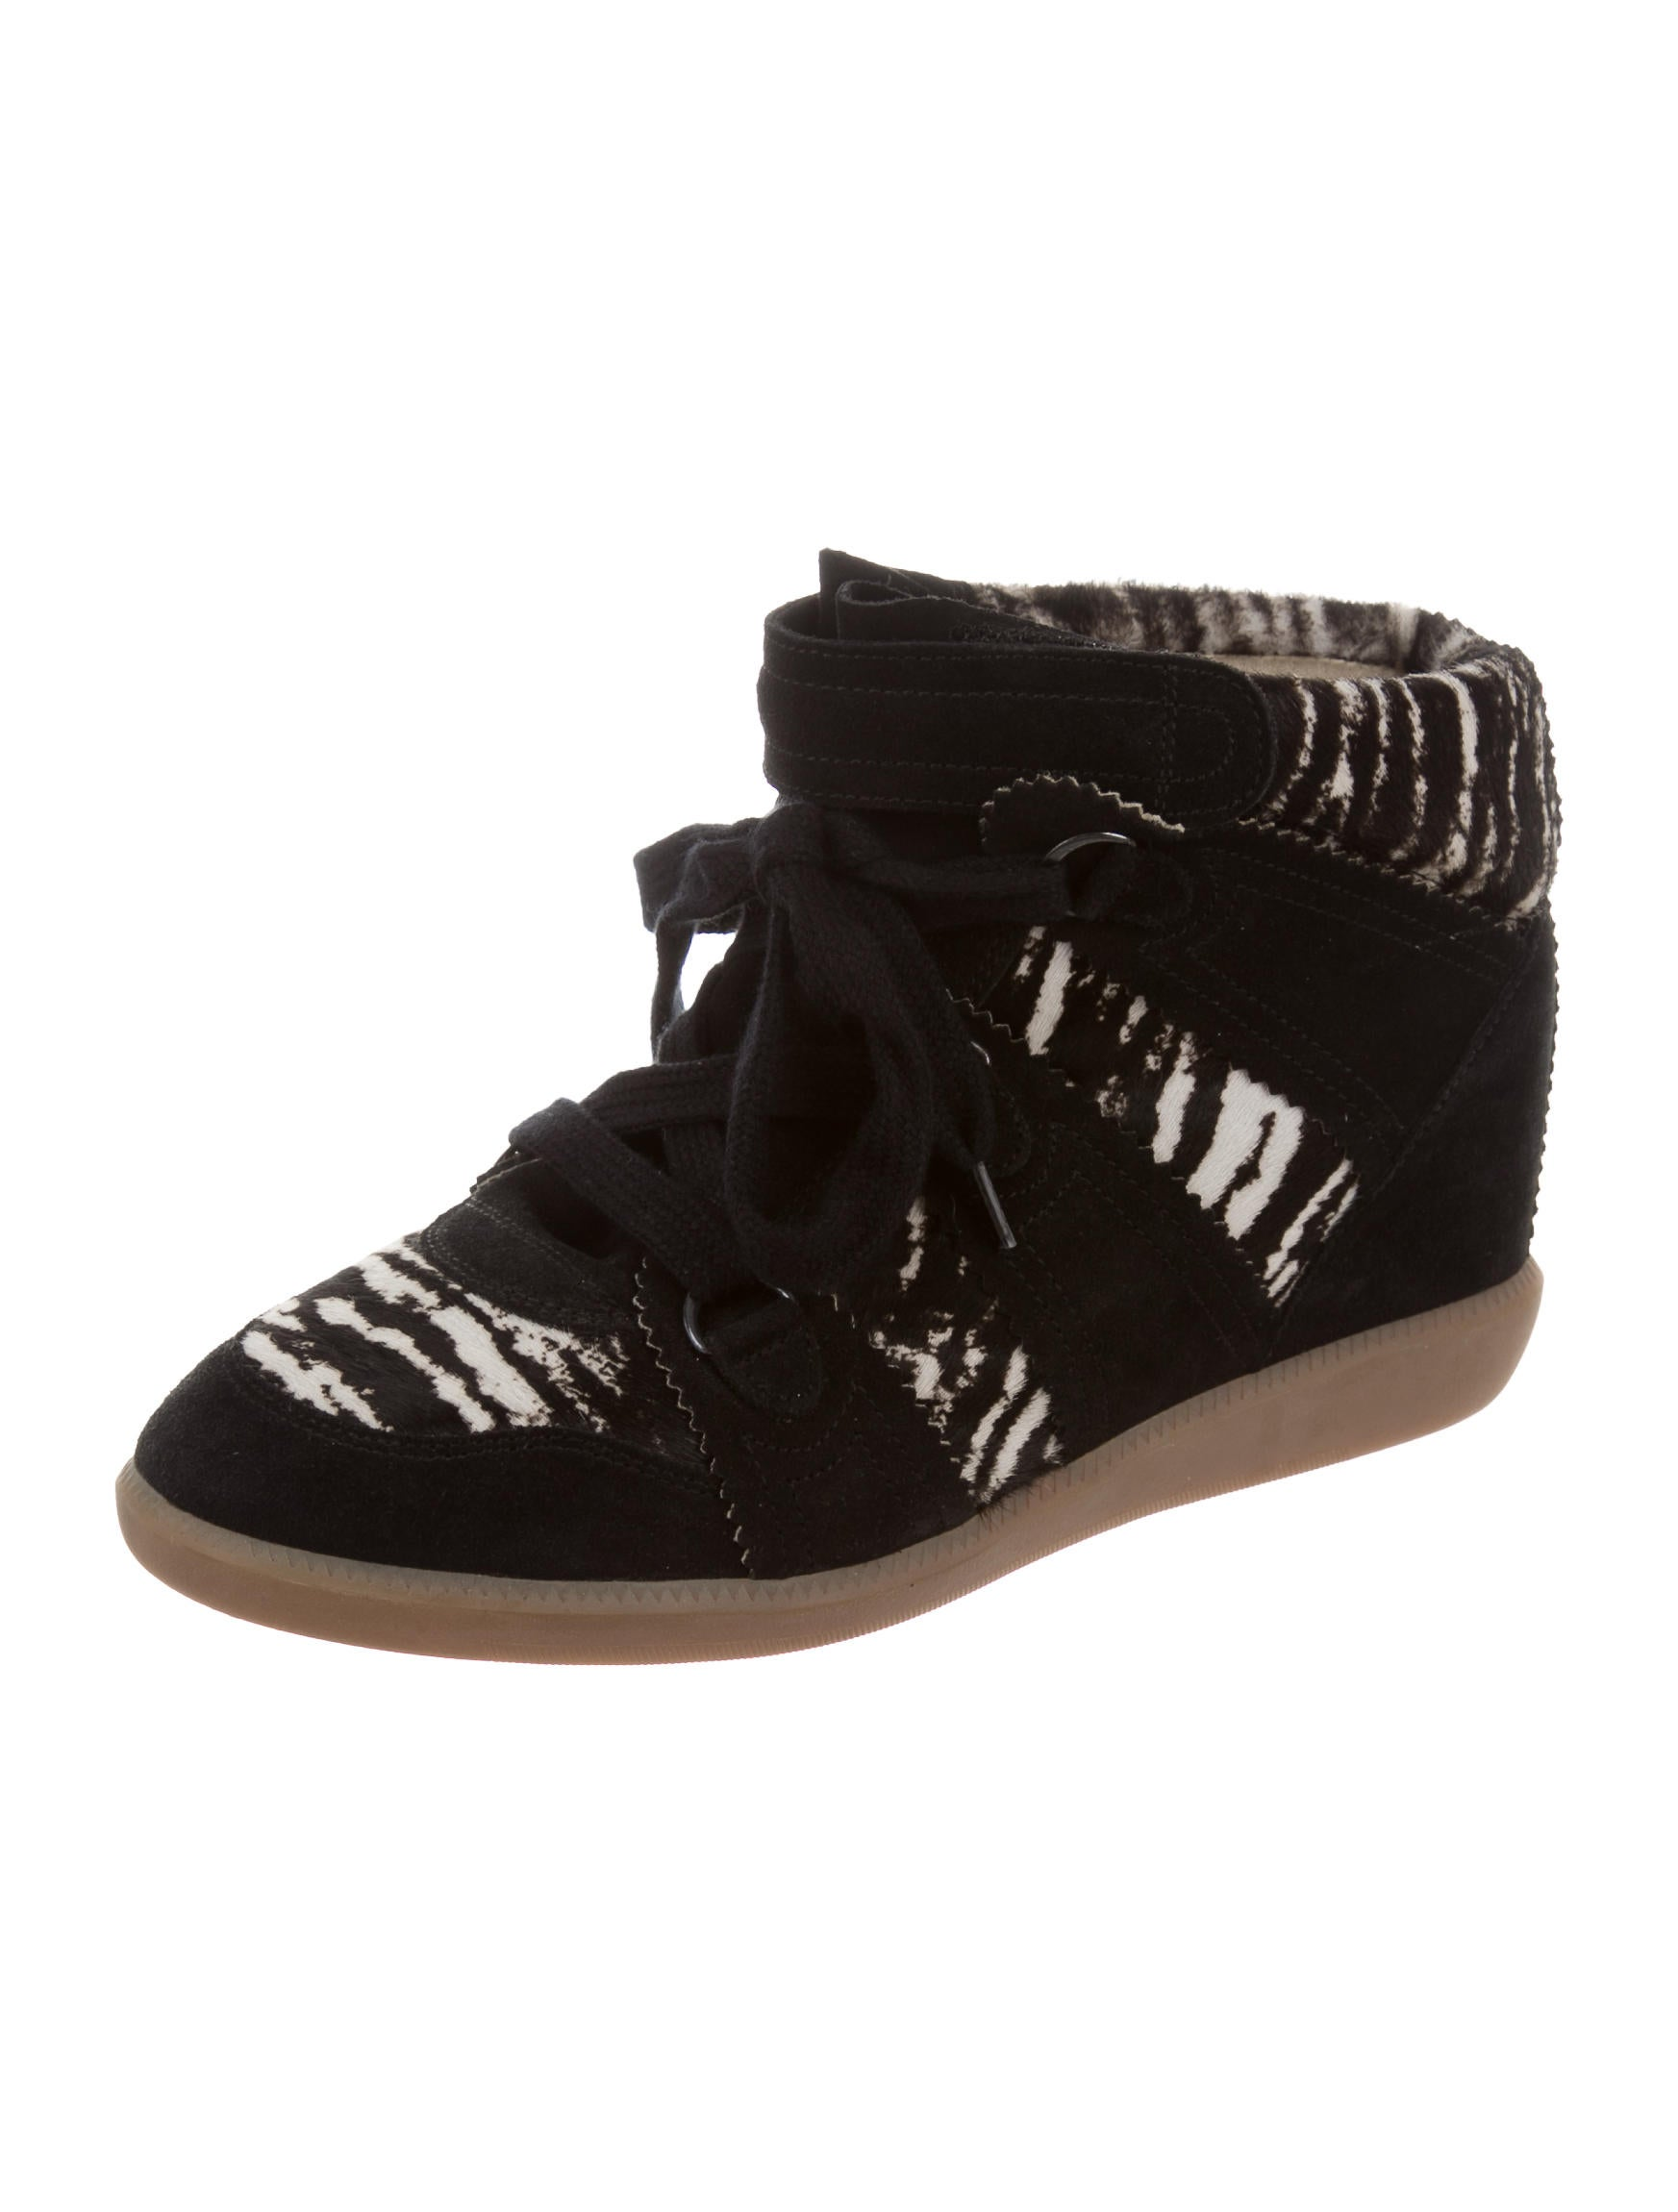 isabel marant basket wedge sneakers shoes isa41563 the realreal. Black Bedroom Furniture Sets. Home Design Ideas